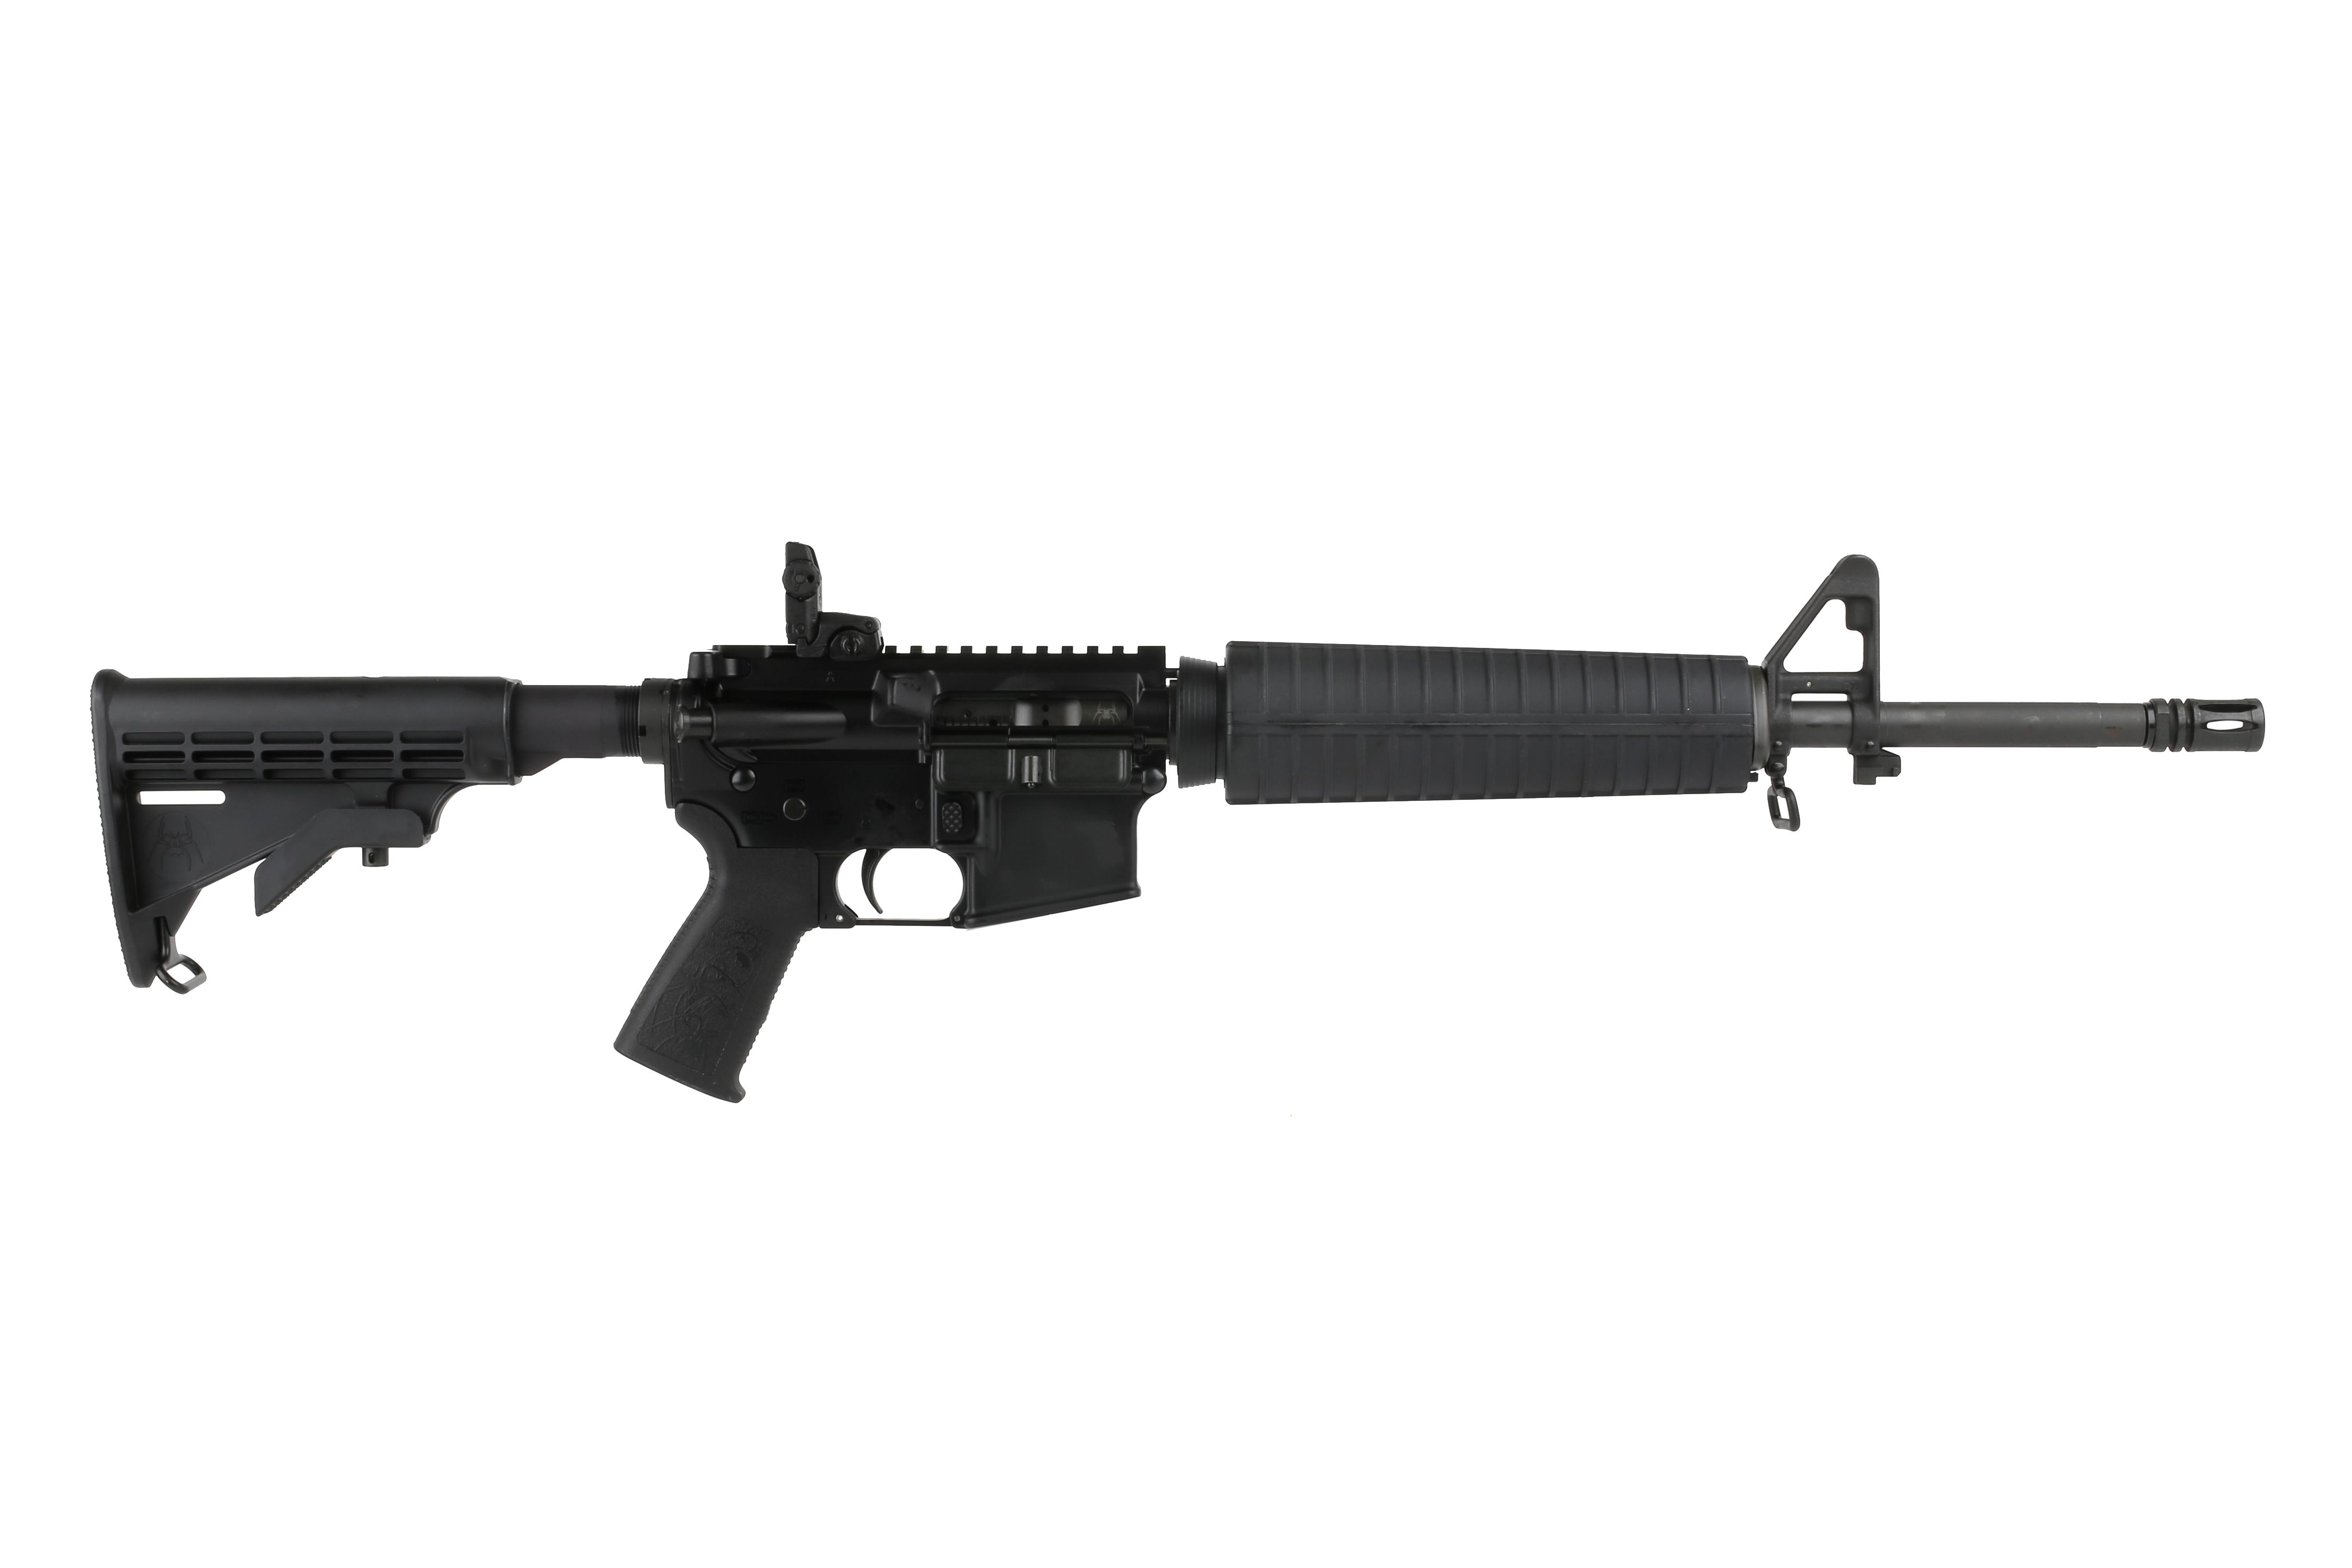 Spike's Tactical 16 5.56 NATO Rifle with Mid-Length Handguard